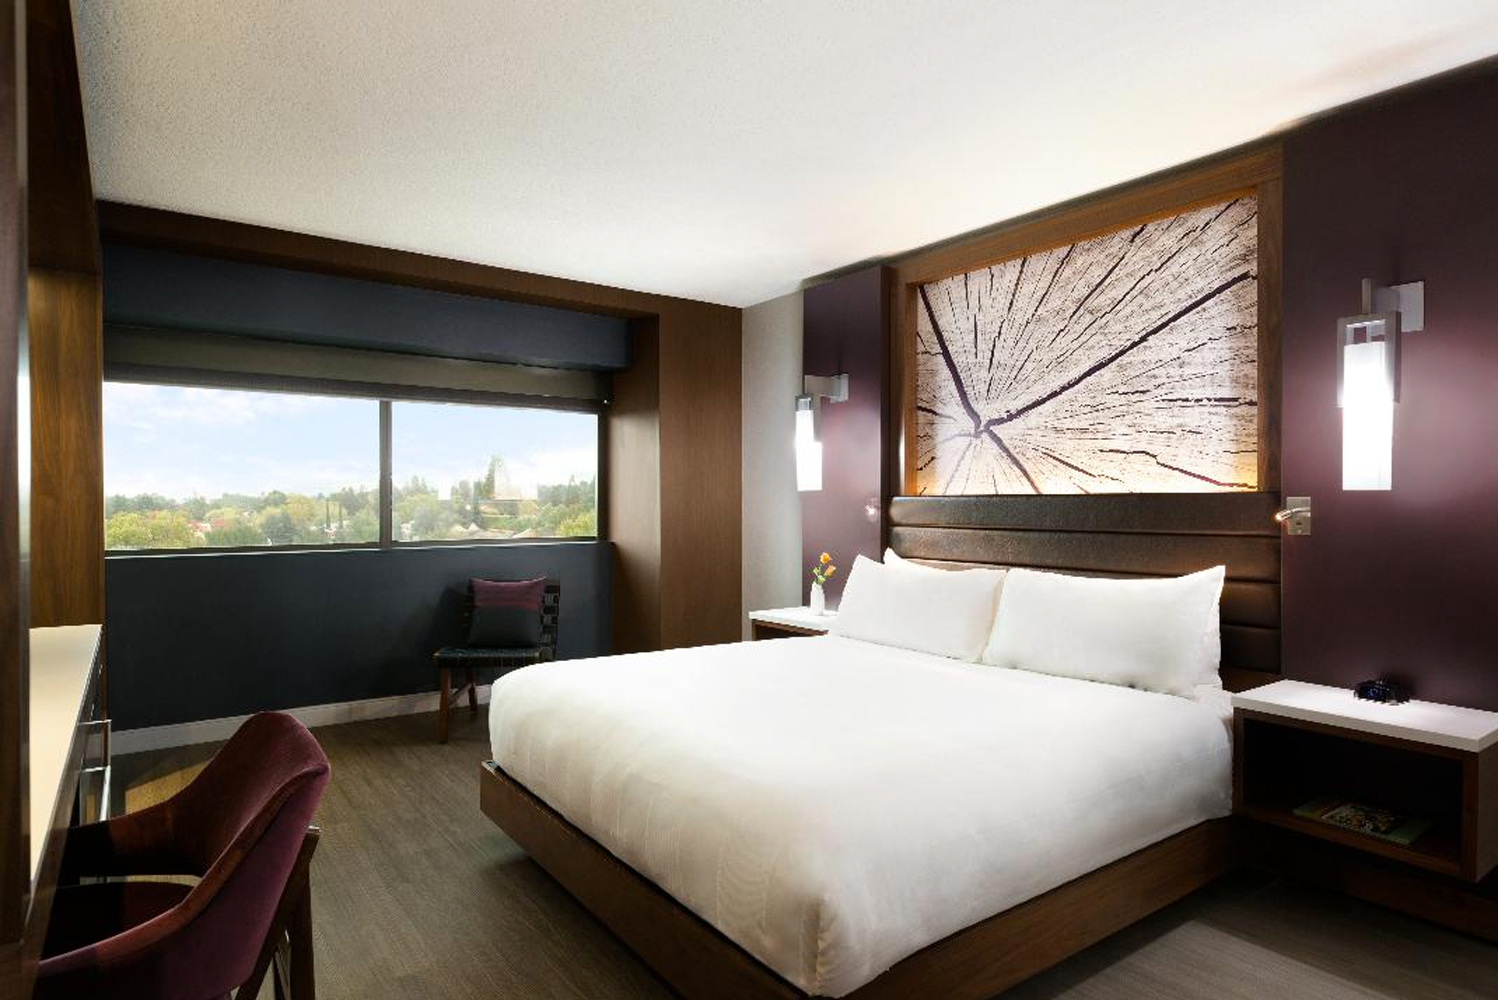 The hotel's 342 guestrooms were completely redone in a loft-style update.